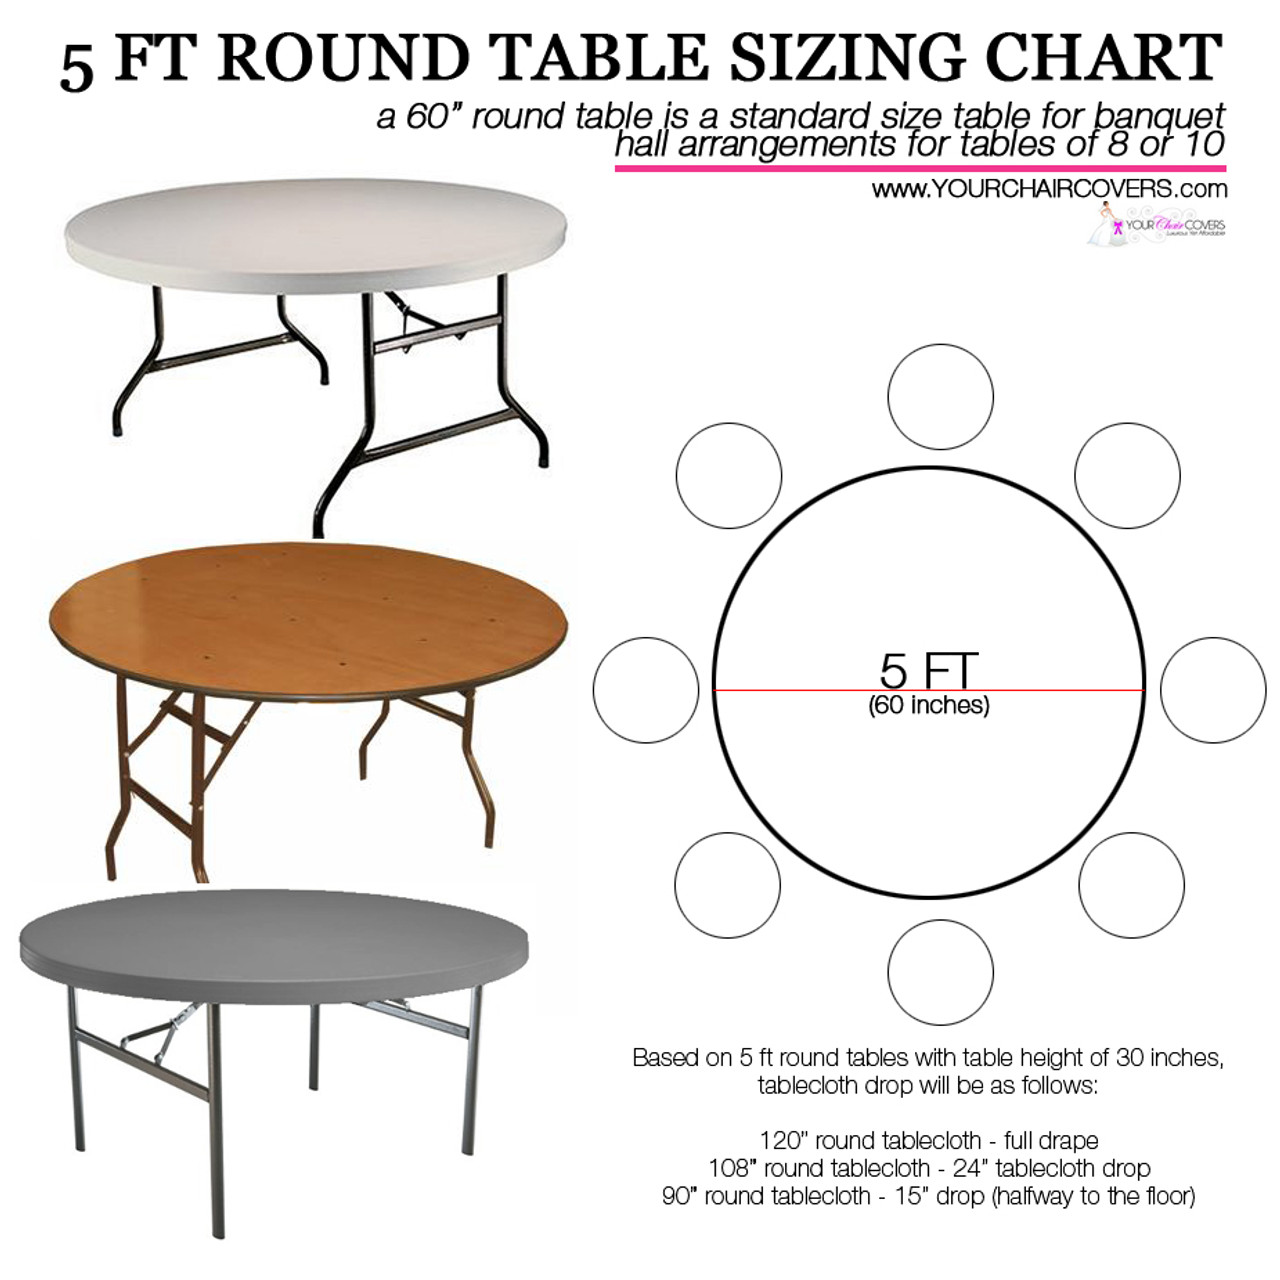 Gentil ... How To Buy Eggplant Satin Tablecloths For 5 Ft Round Tables? Use This  Tablecloth Sizing